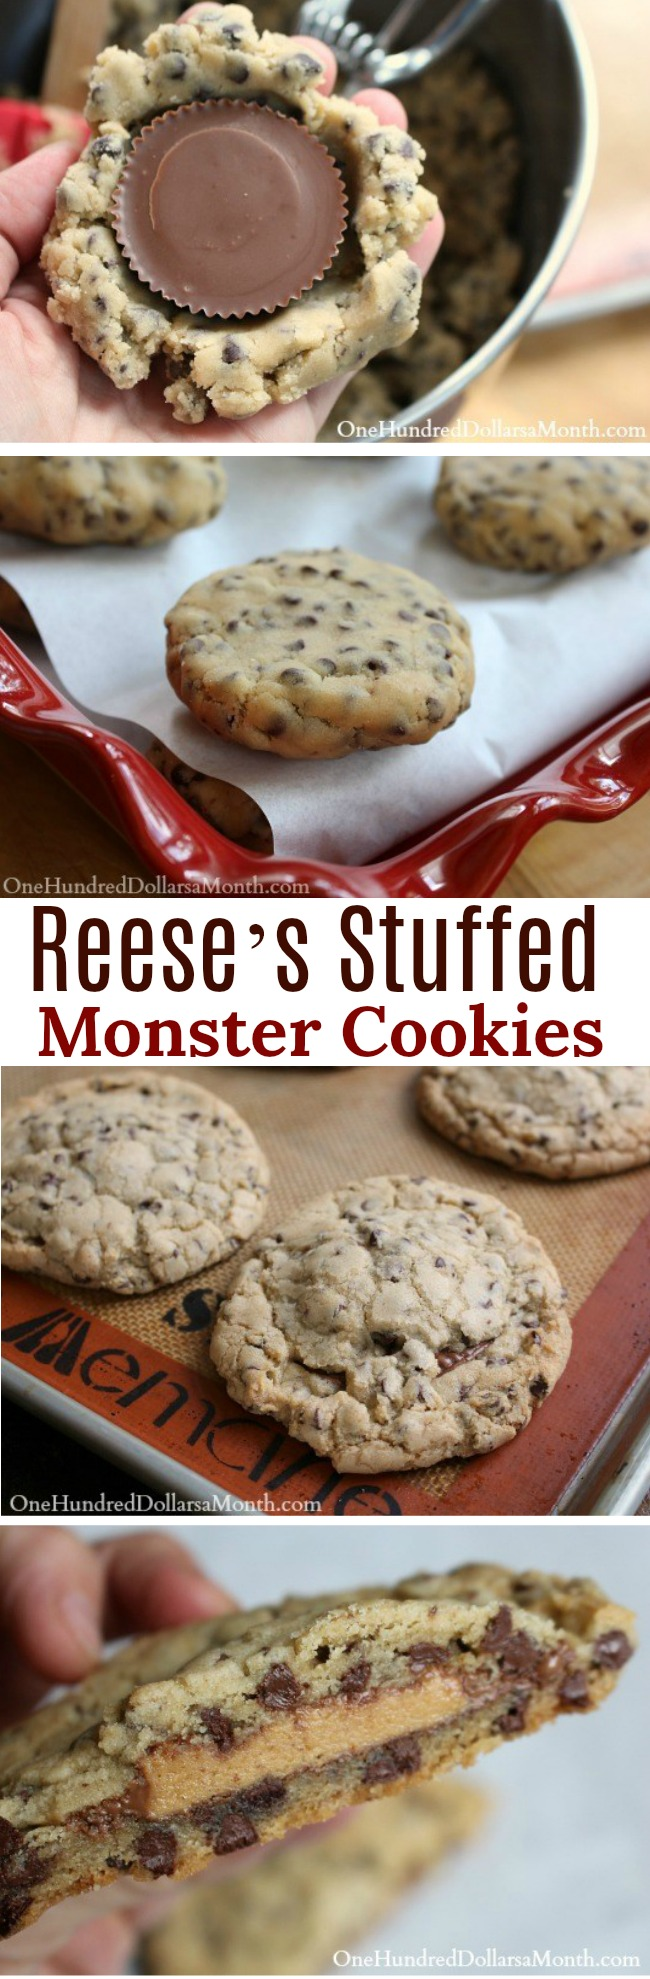 Chewy Reese's Stuffed Monster Cookies